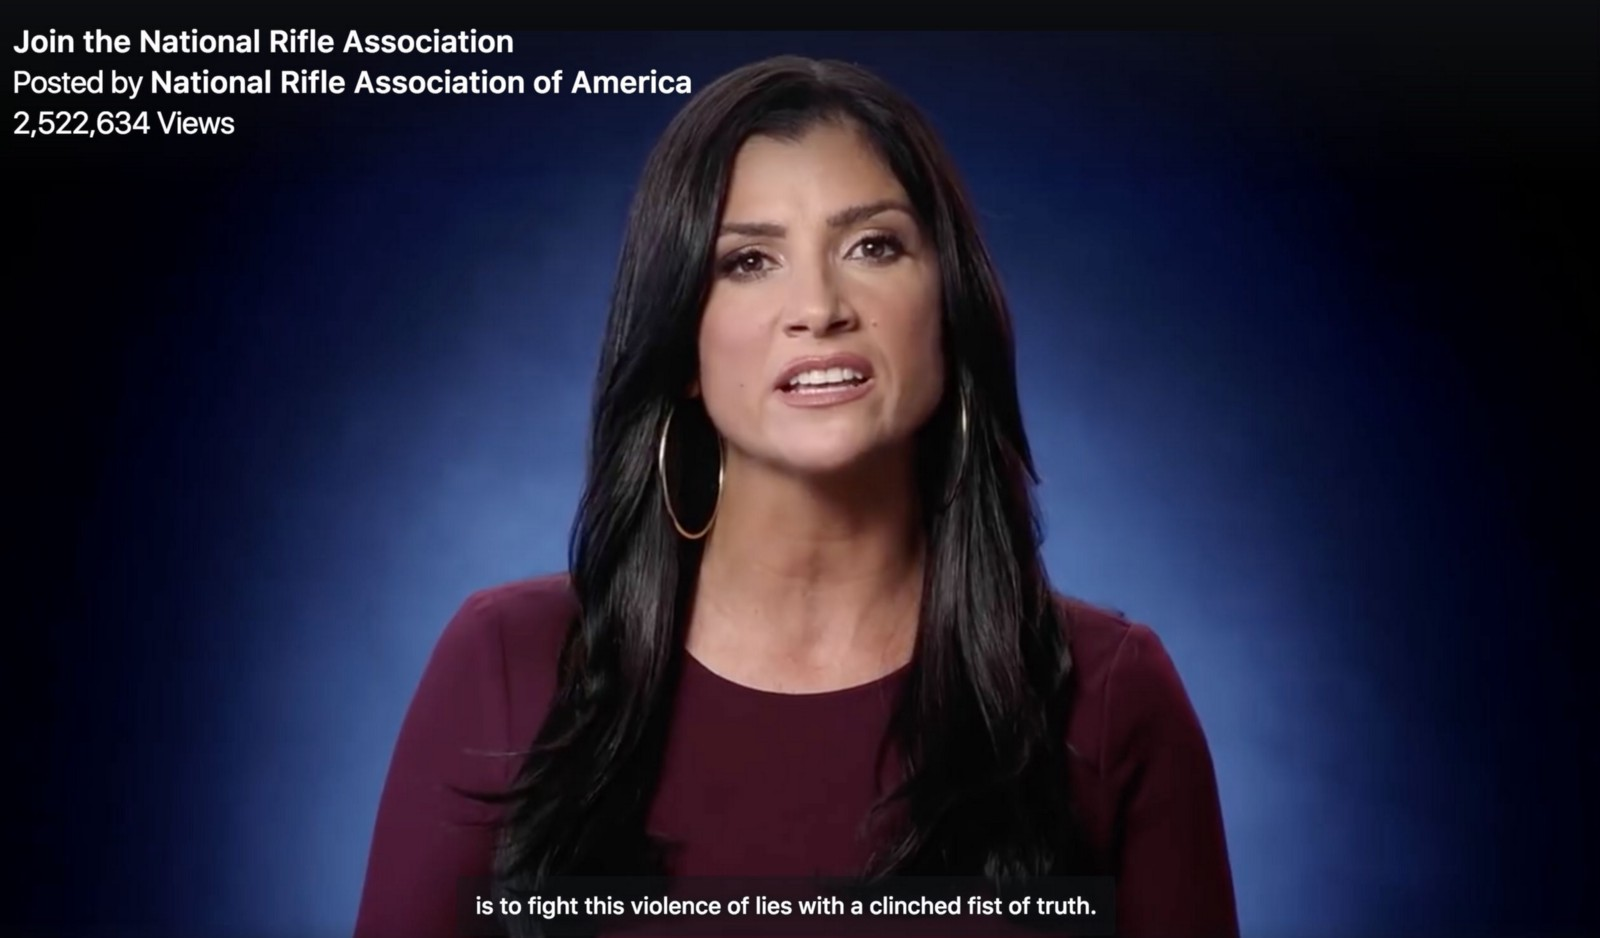 Even Gun Owners Are Outraged Over The NRA's New Recruitment Video